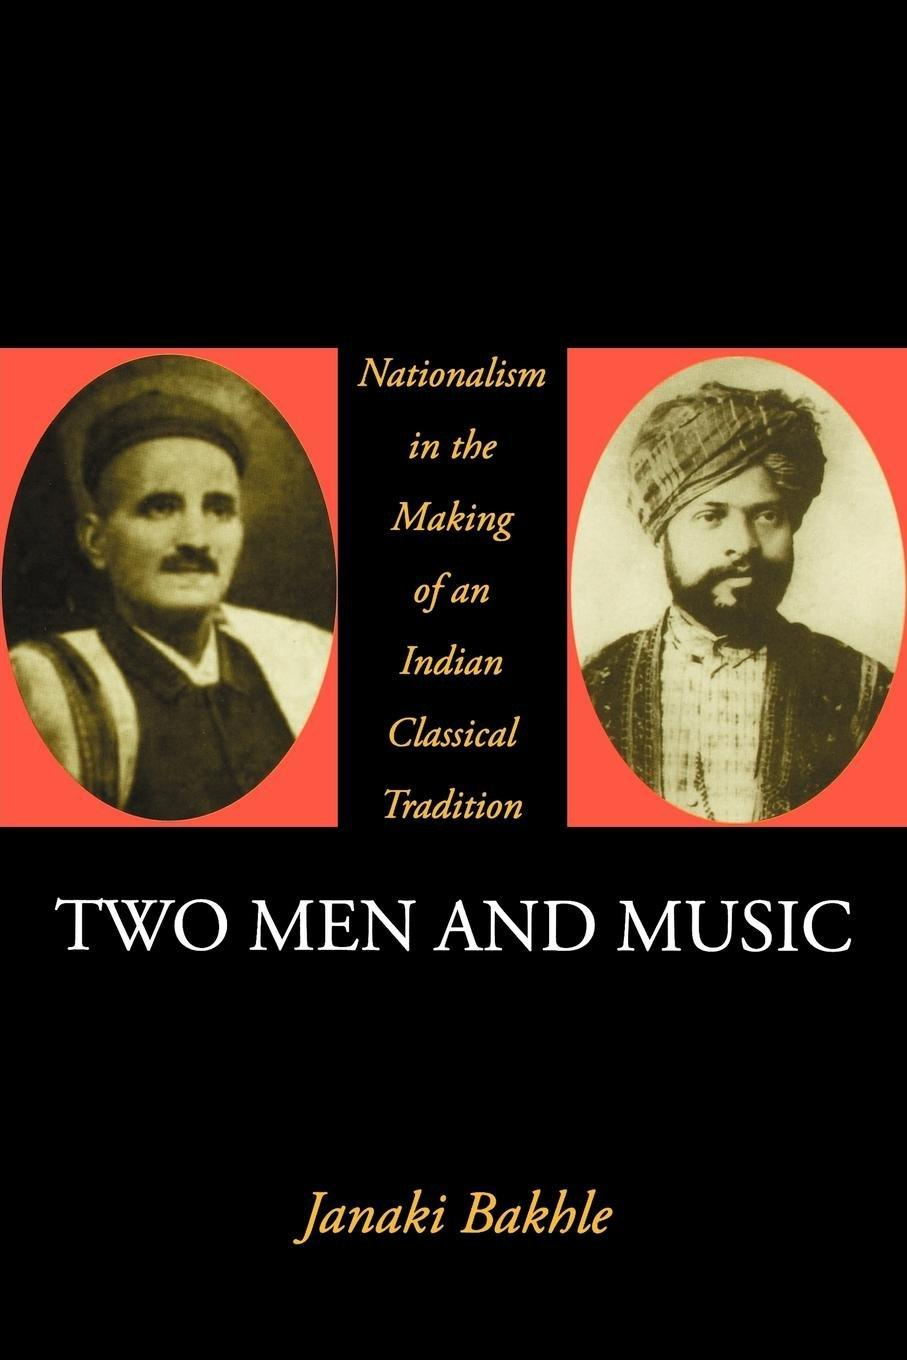 Nationalism in the Making of an Indian Classical Tradition